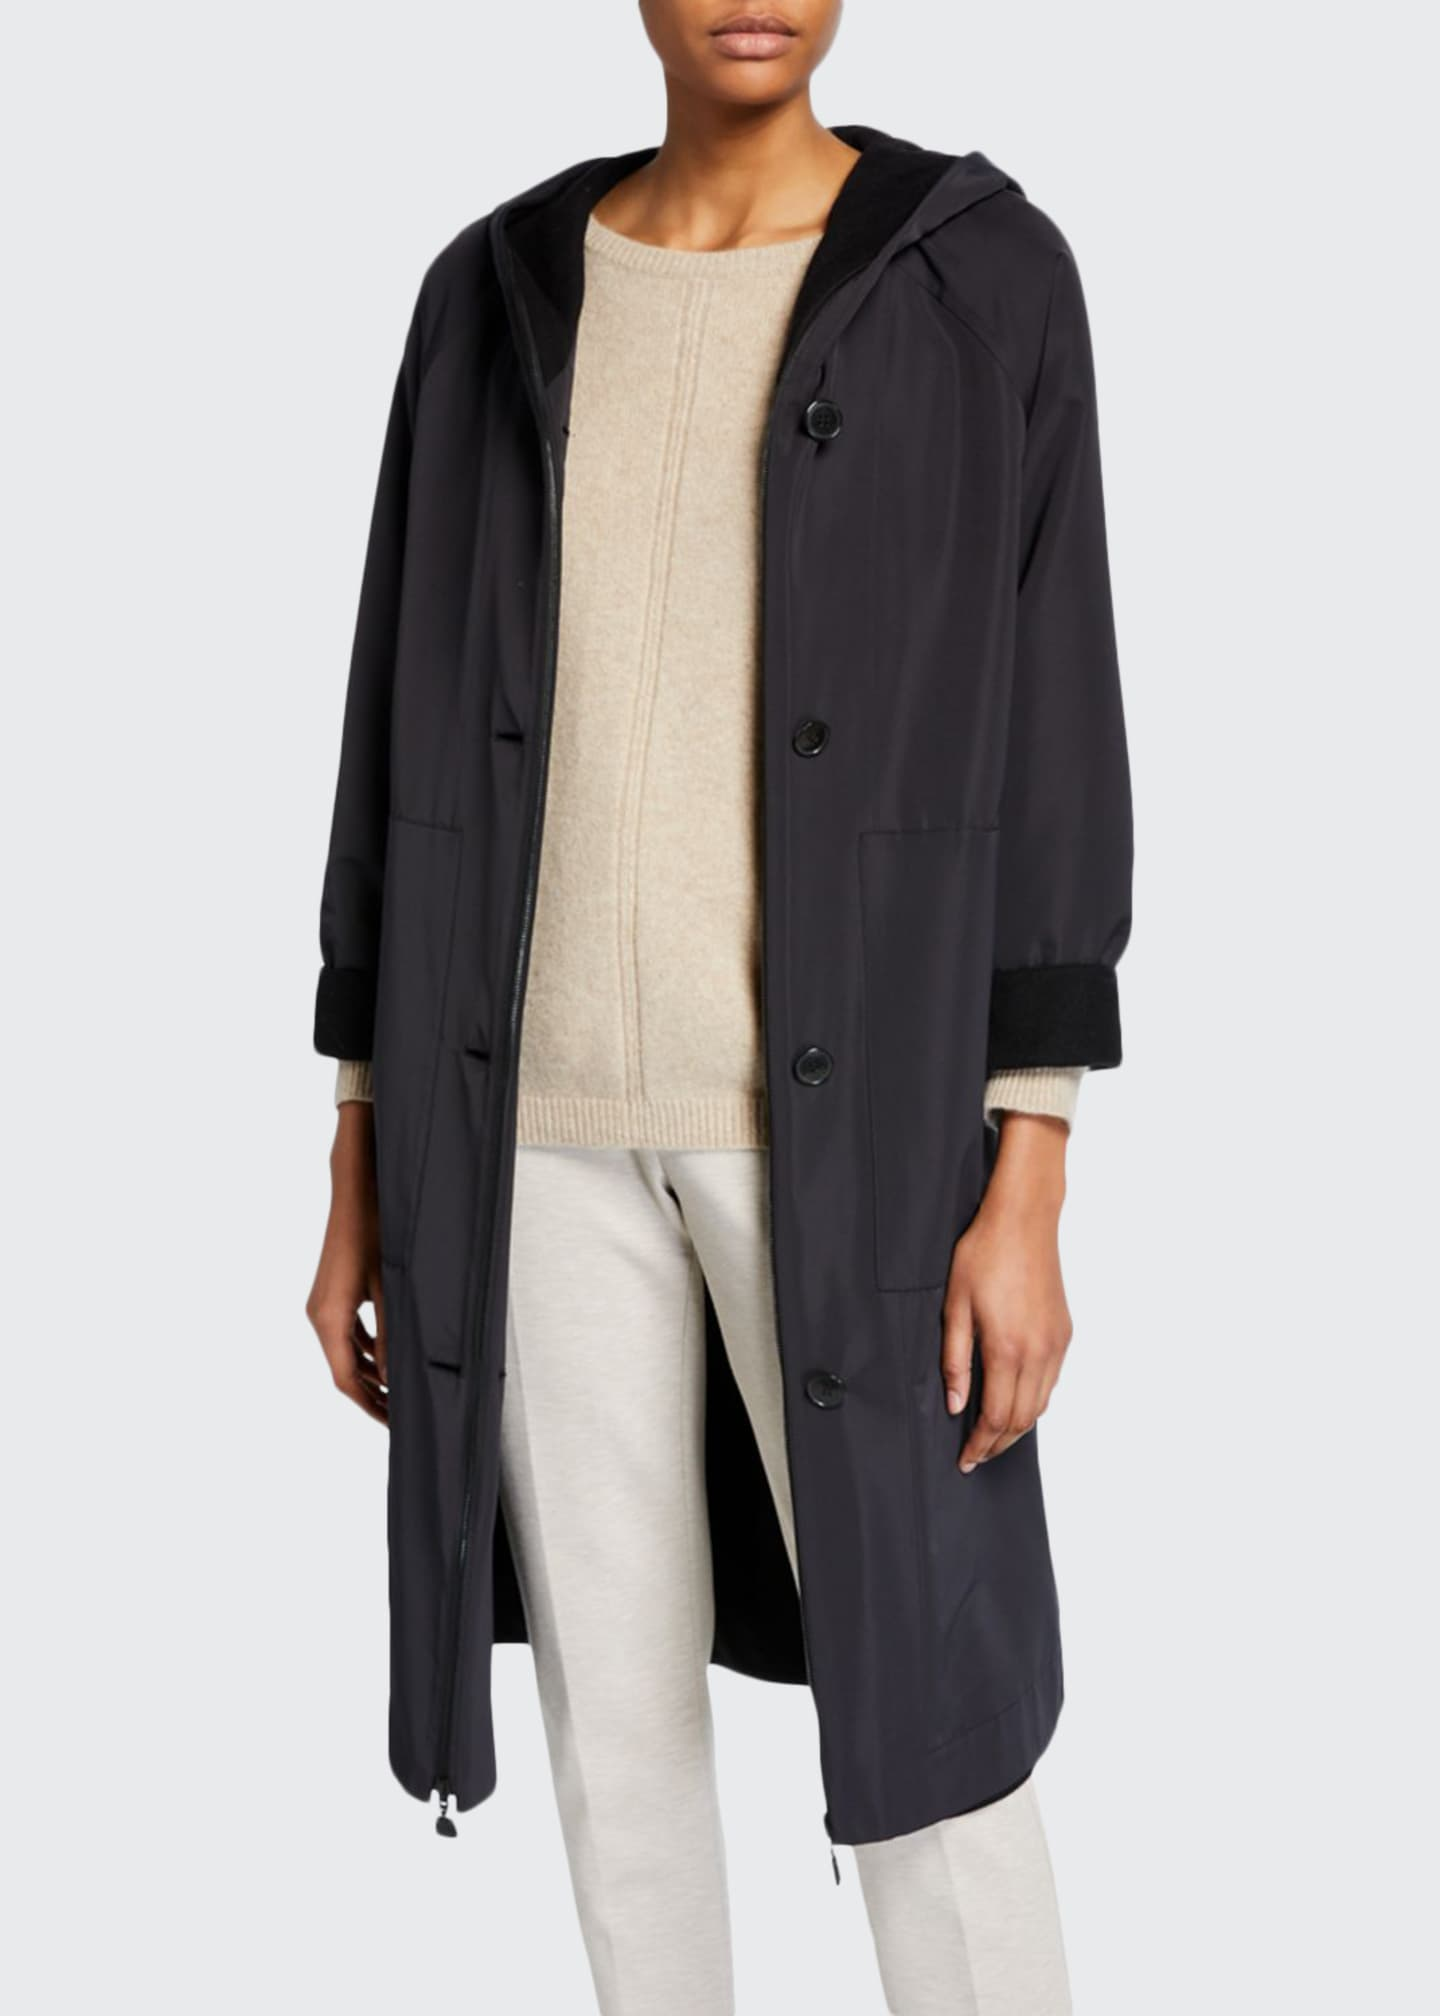 Akris 2-in-1 Hooded Button-Front Silk & Cashmere Jacket